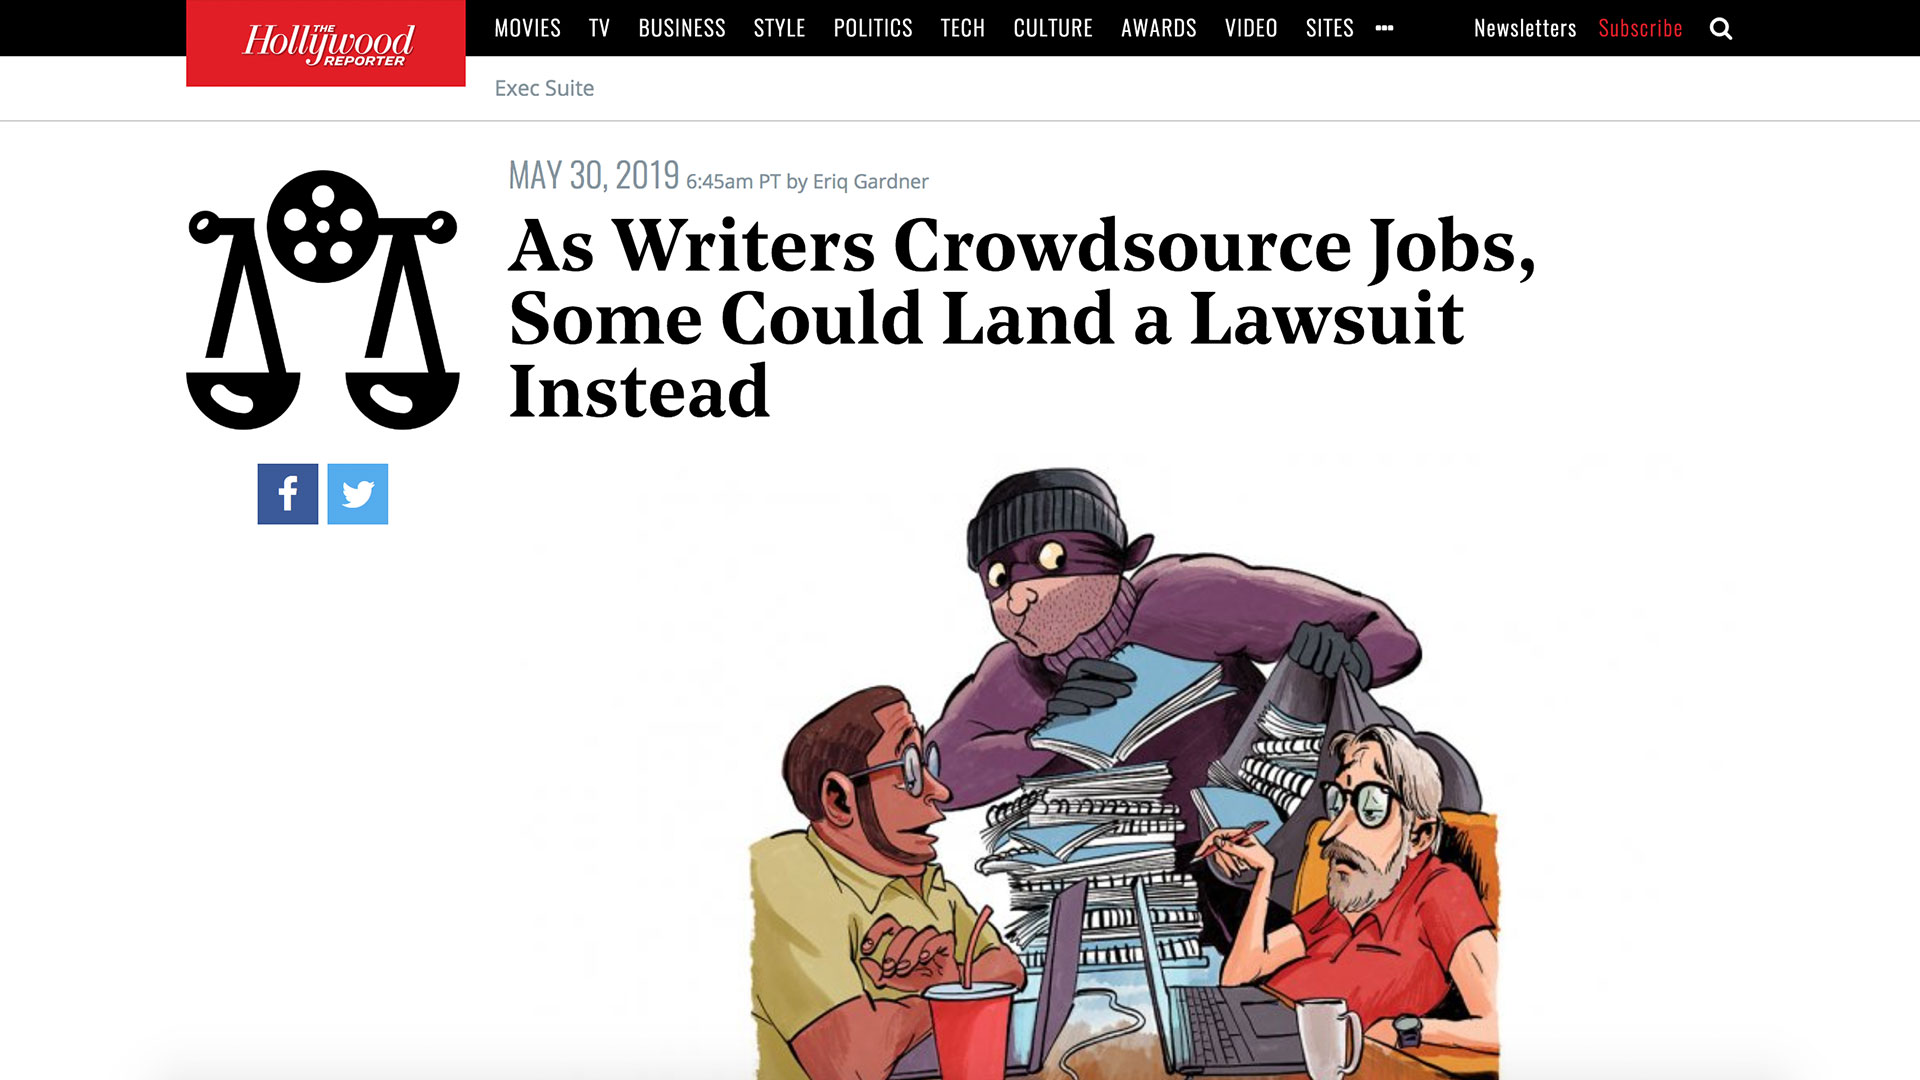 Fairness Rocks News As Writers Crowdsource Jobs, Some Could Land a Lawsuit Instead